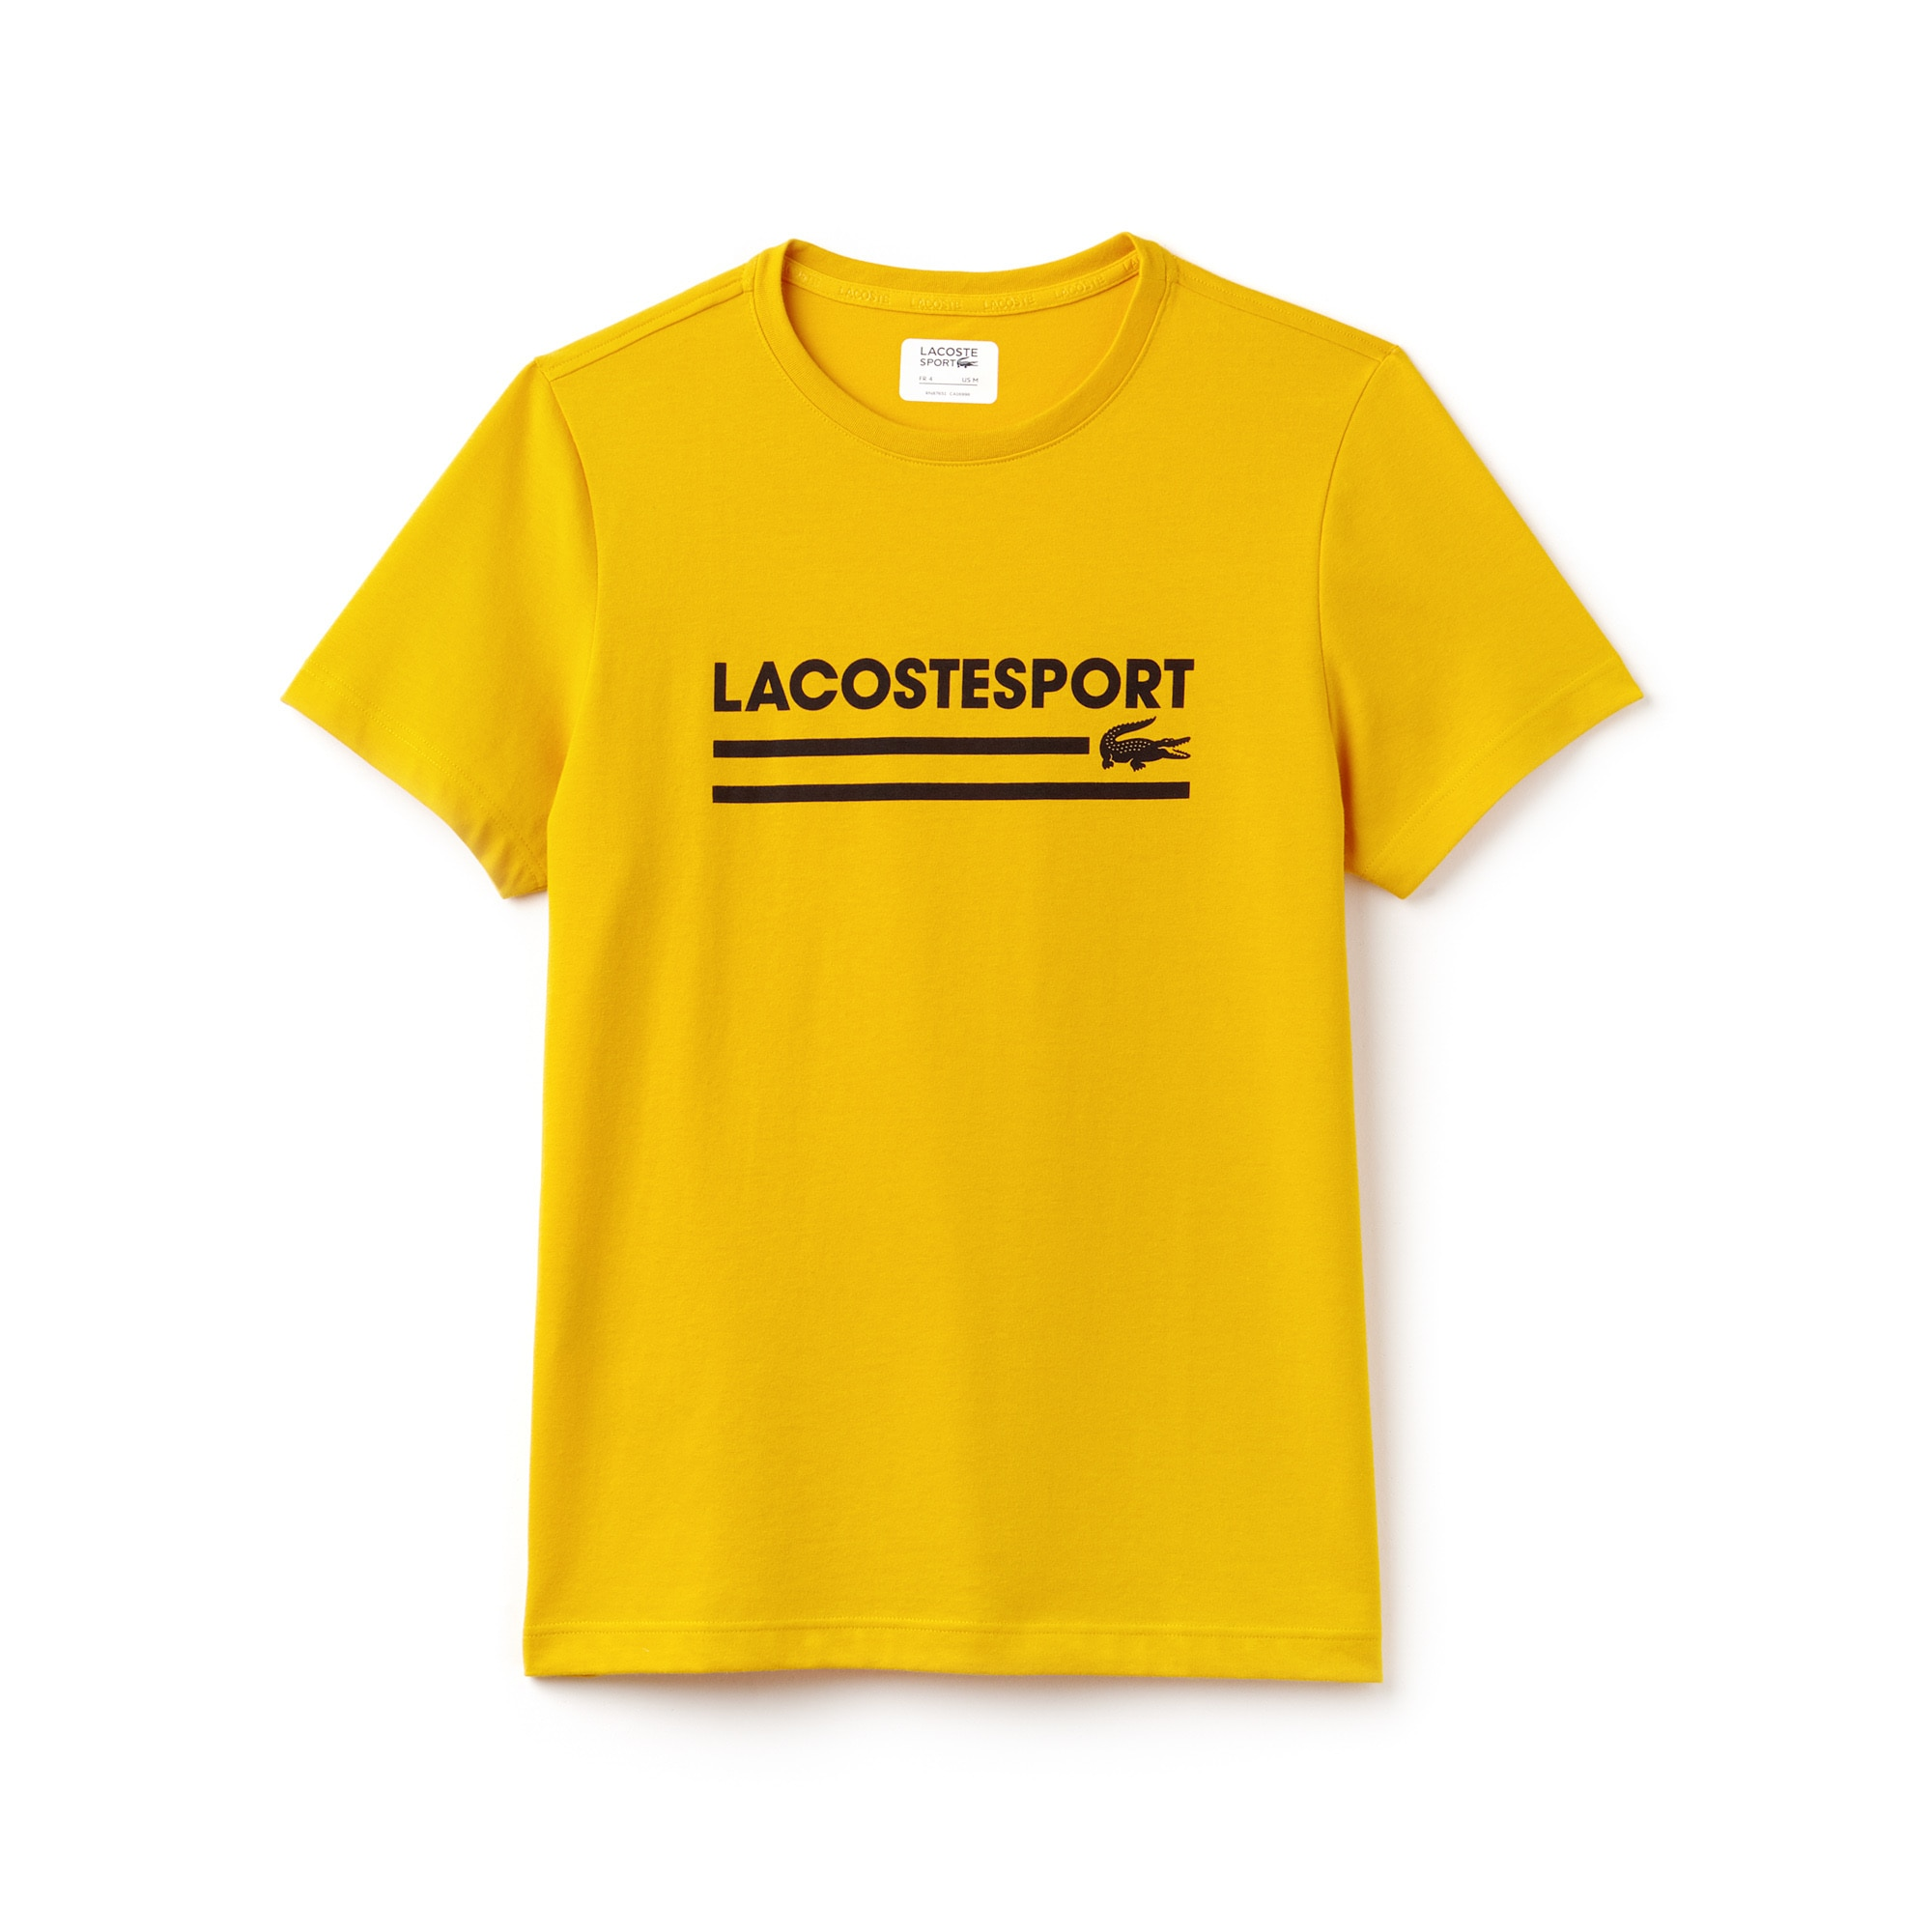 Men's Lacoste SPORT Lettering Technical Jersey Tennis T-shirt